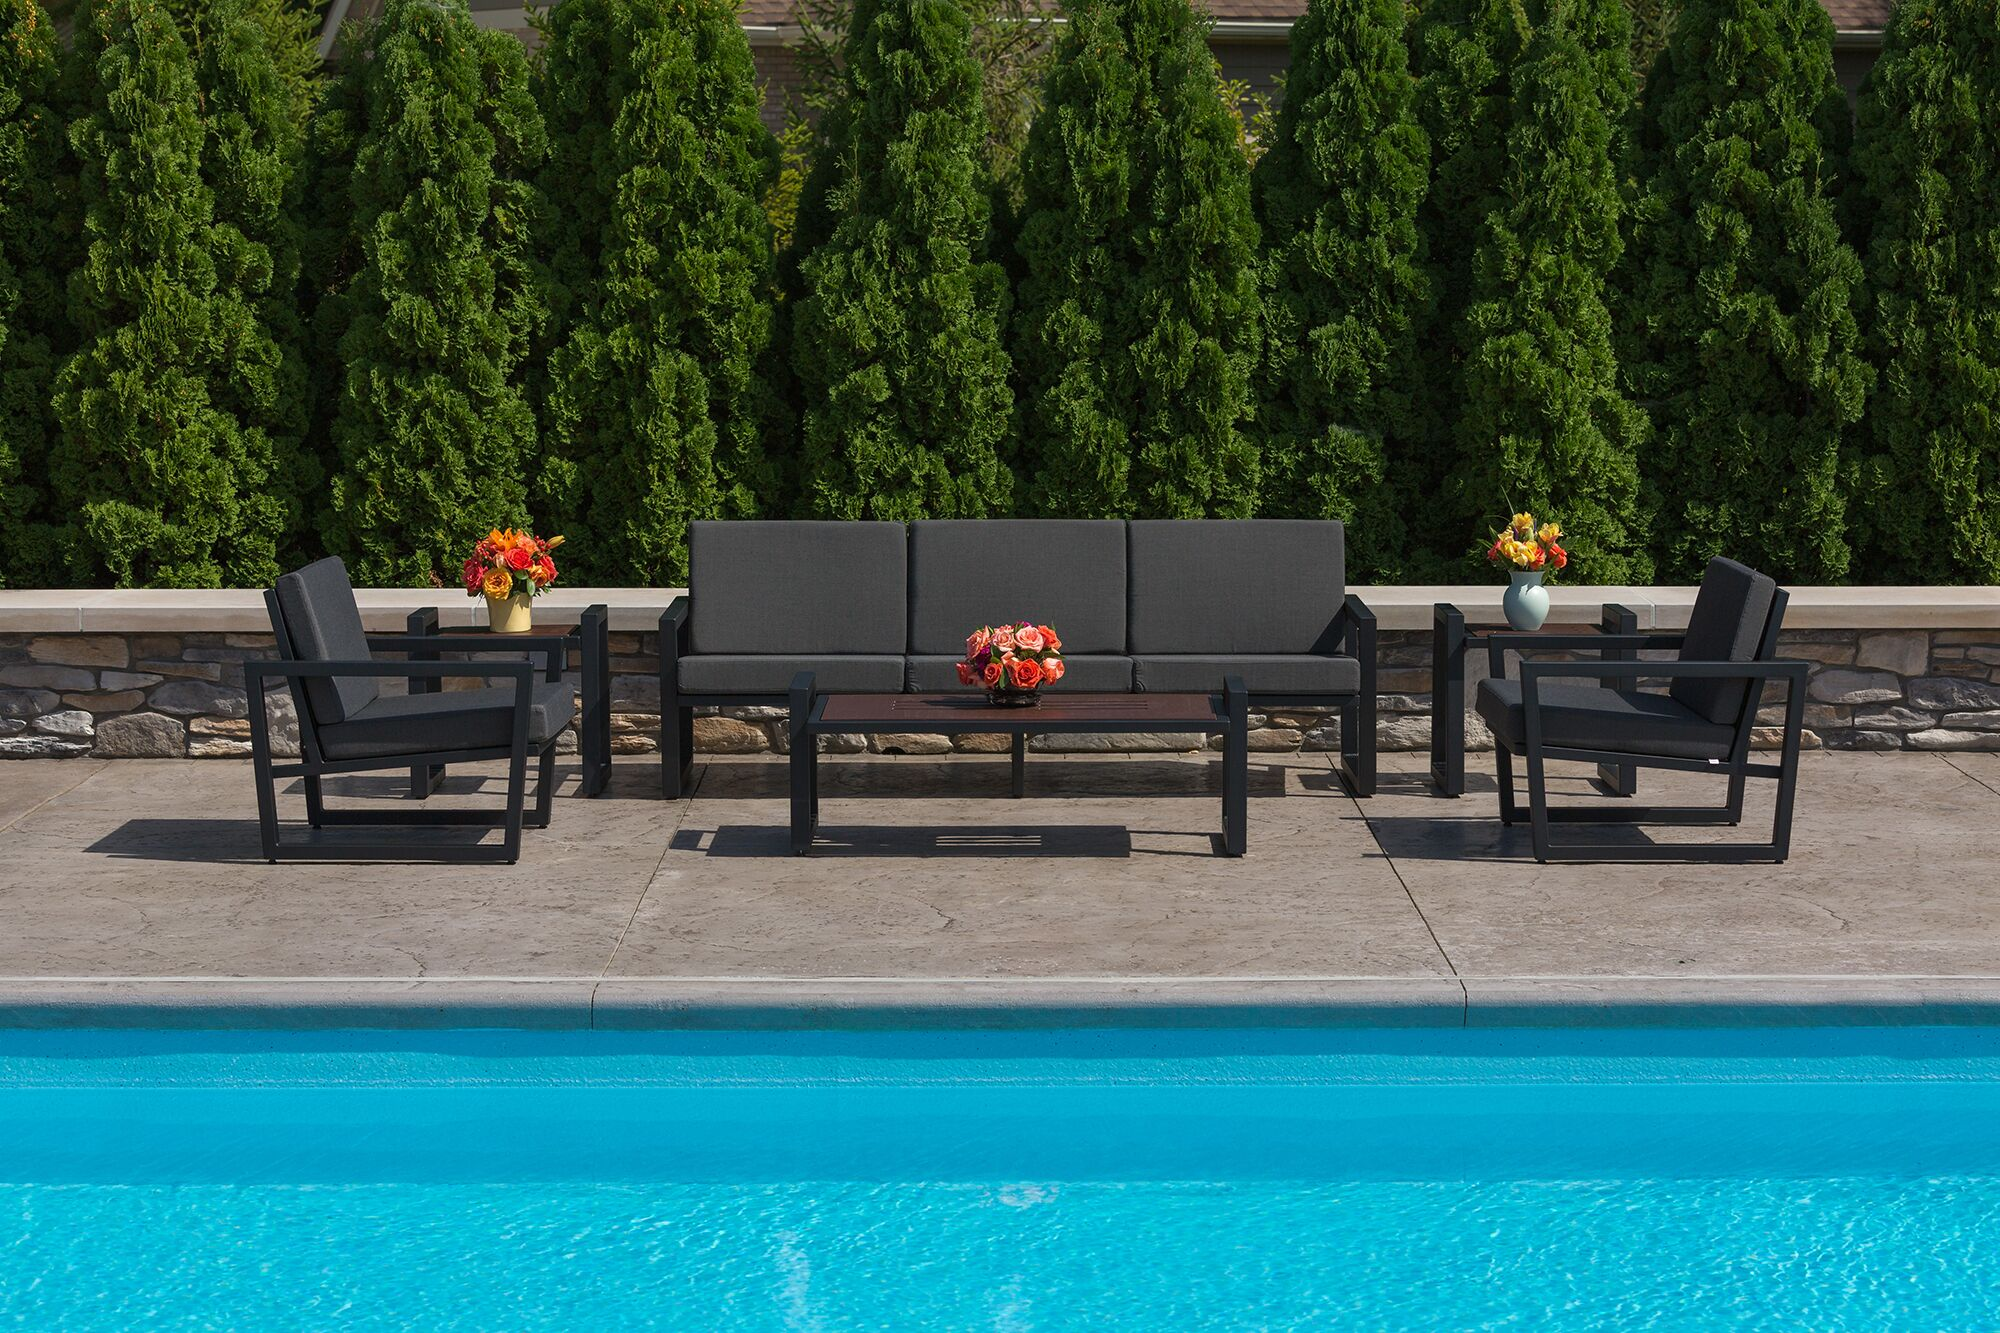 Vero 6 Piece Sunbrella Sofa Set with Cushions Fabric: Charcoal, Color: Textured Black